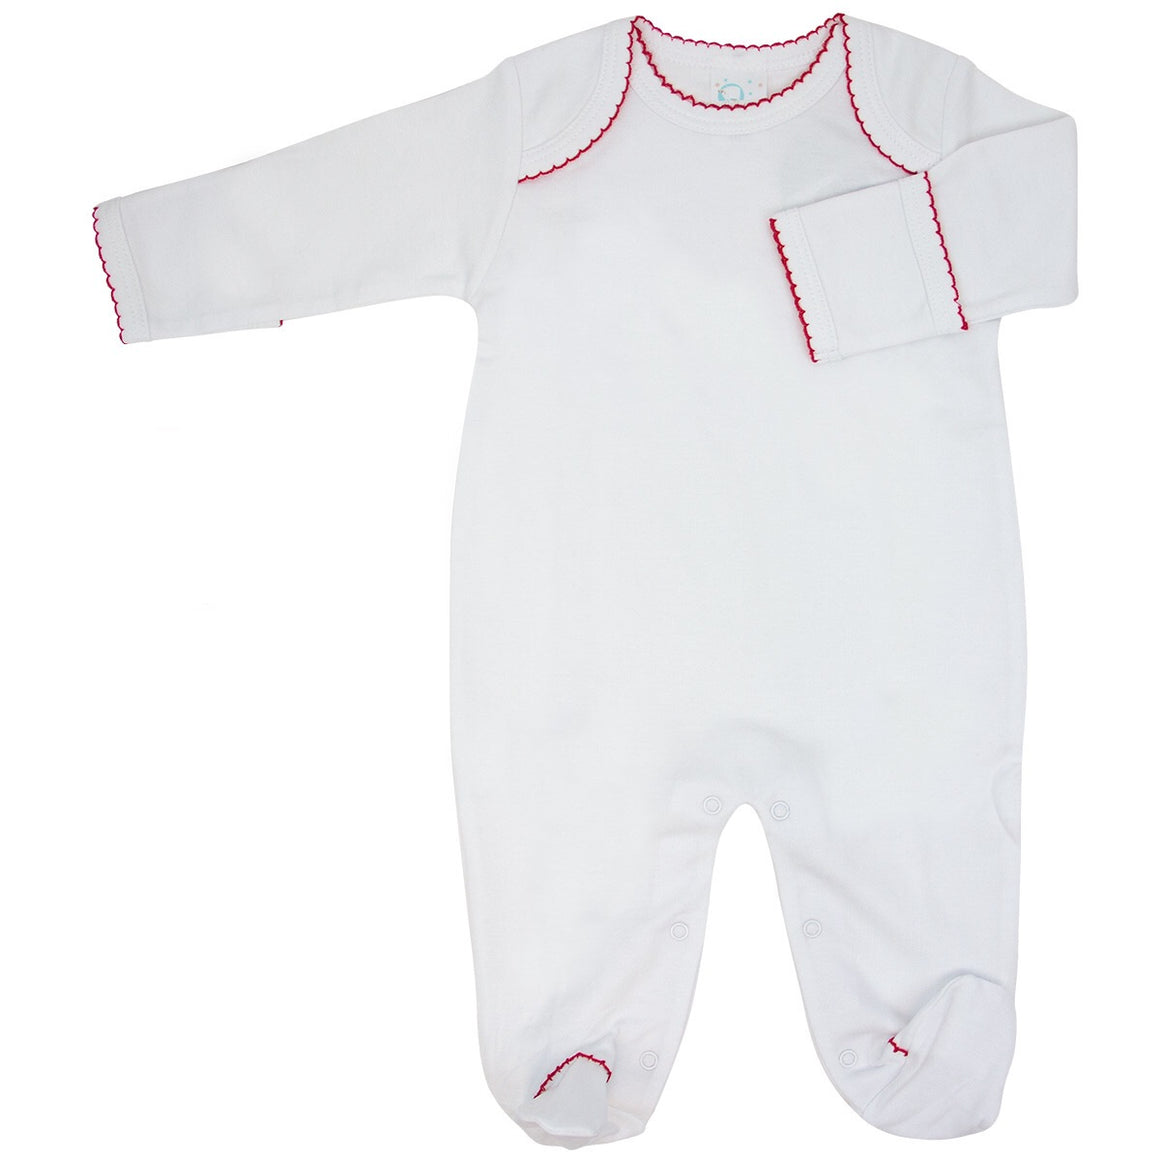 White Knit Footie with Red Trim